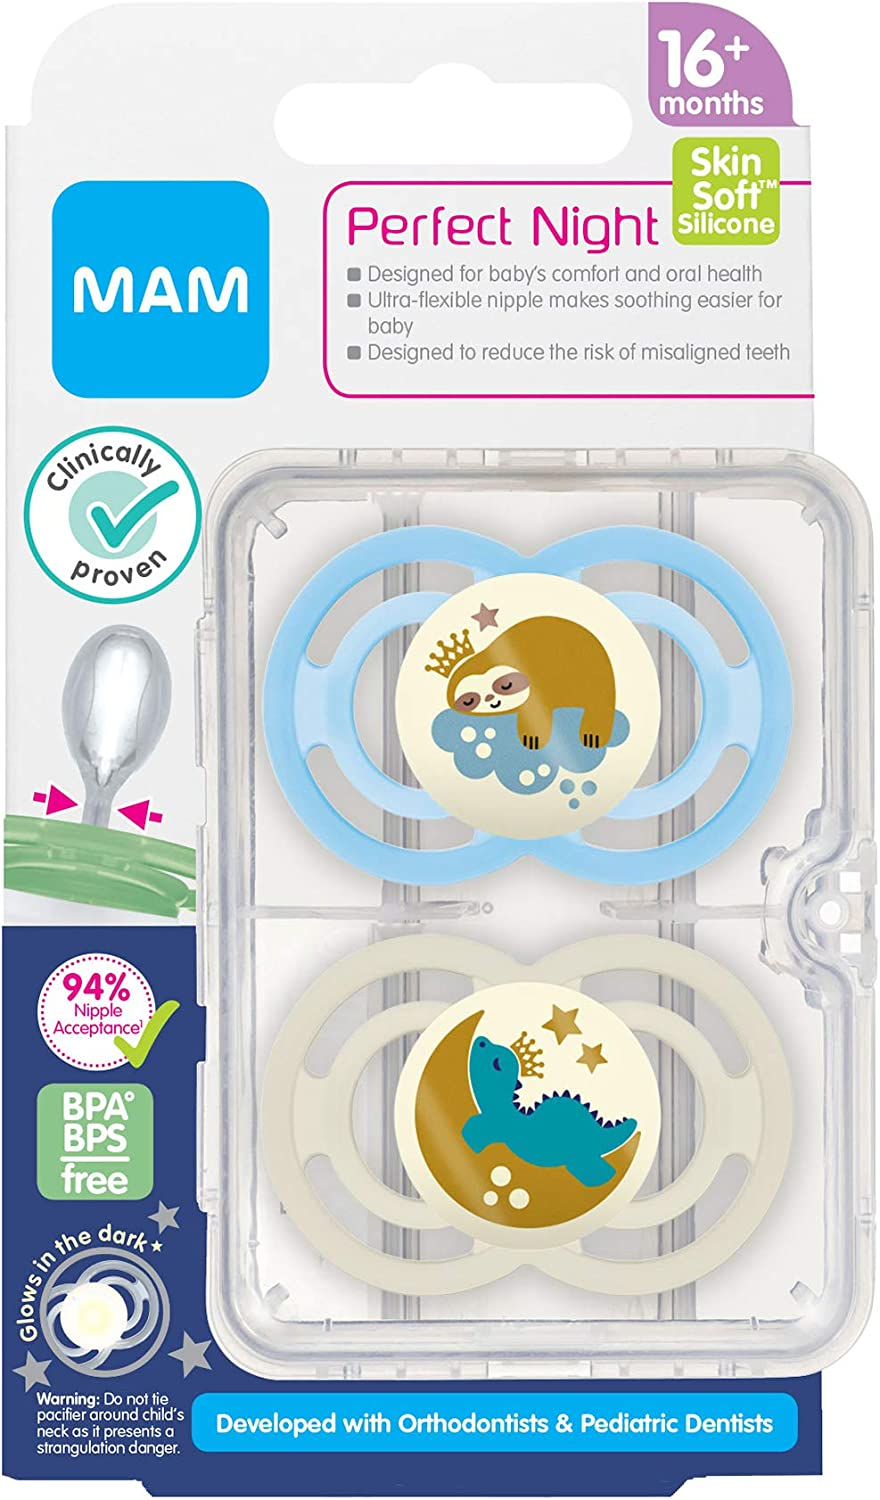 Glow in the Dark Pacifiers 2 Pack Baby Boy Pacifier MAM Perfect Night Pacifiers Pacifiers 16 Plus Months Best Pacifier for Breastfed Babies